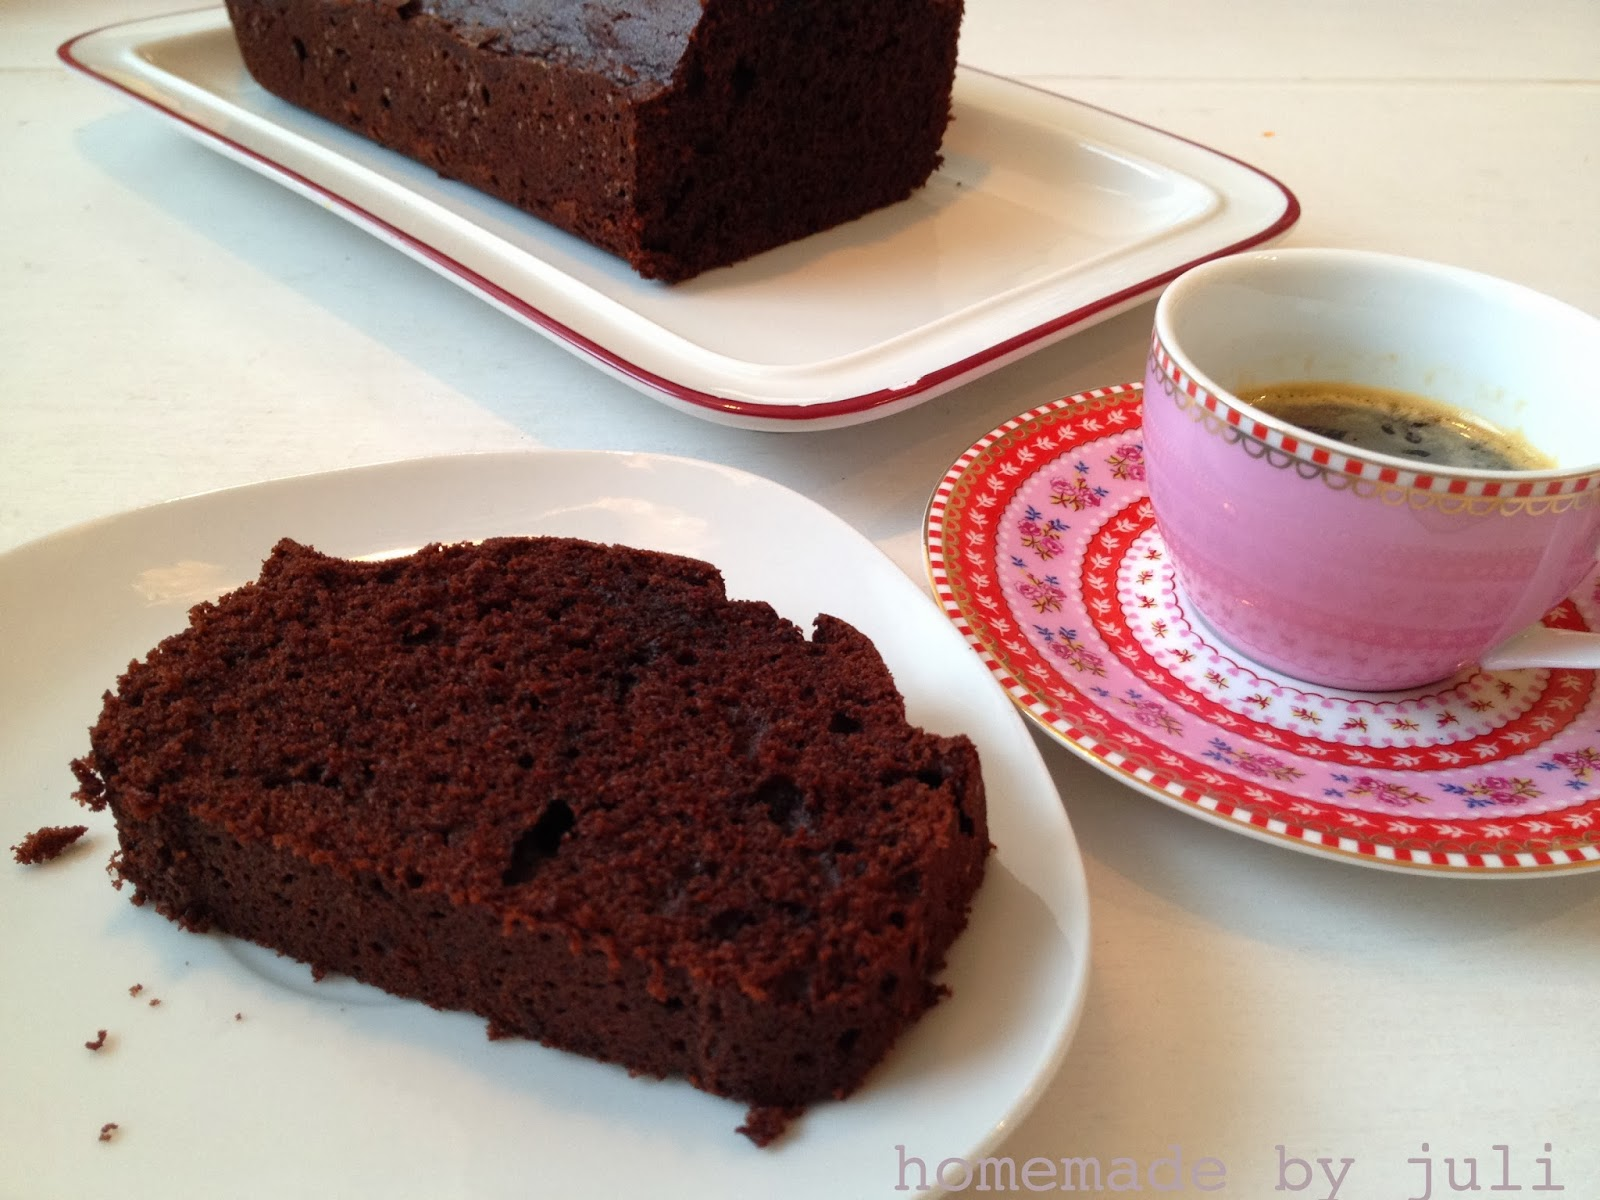 homemade by juli chocolate espresso cake. Black Bedroom Furniture Sets. Home Design Ideas